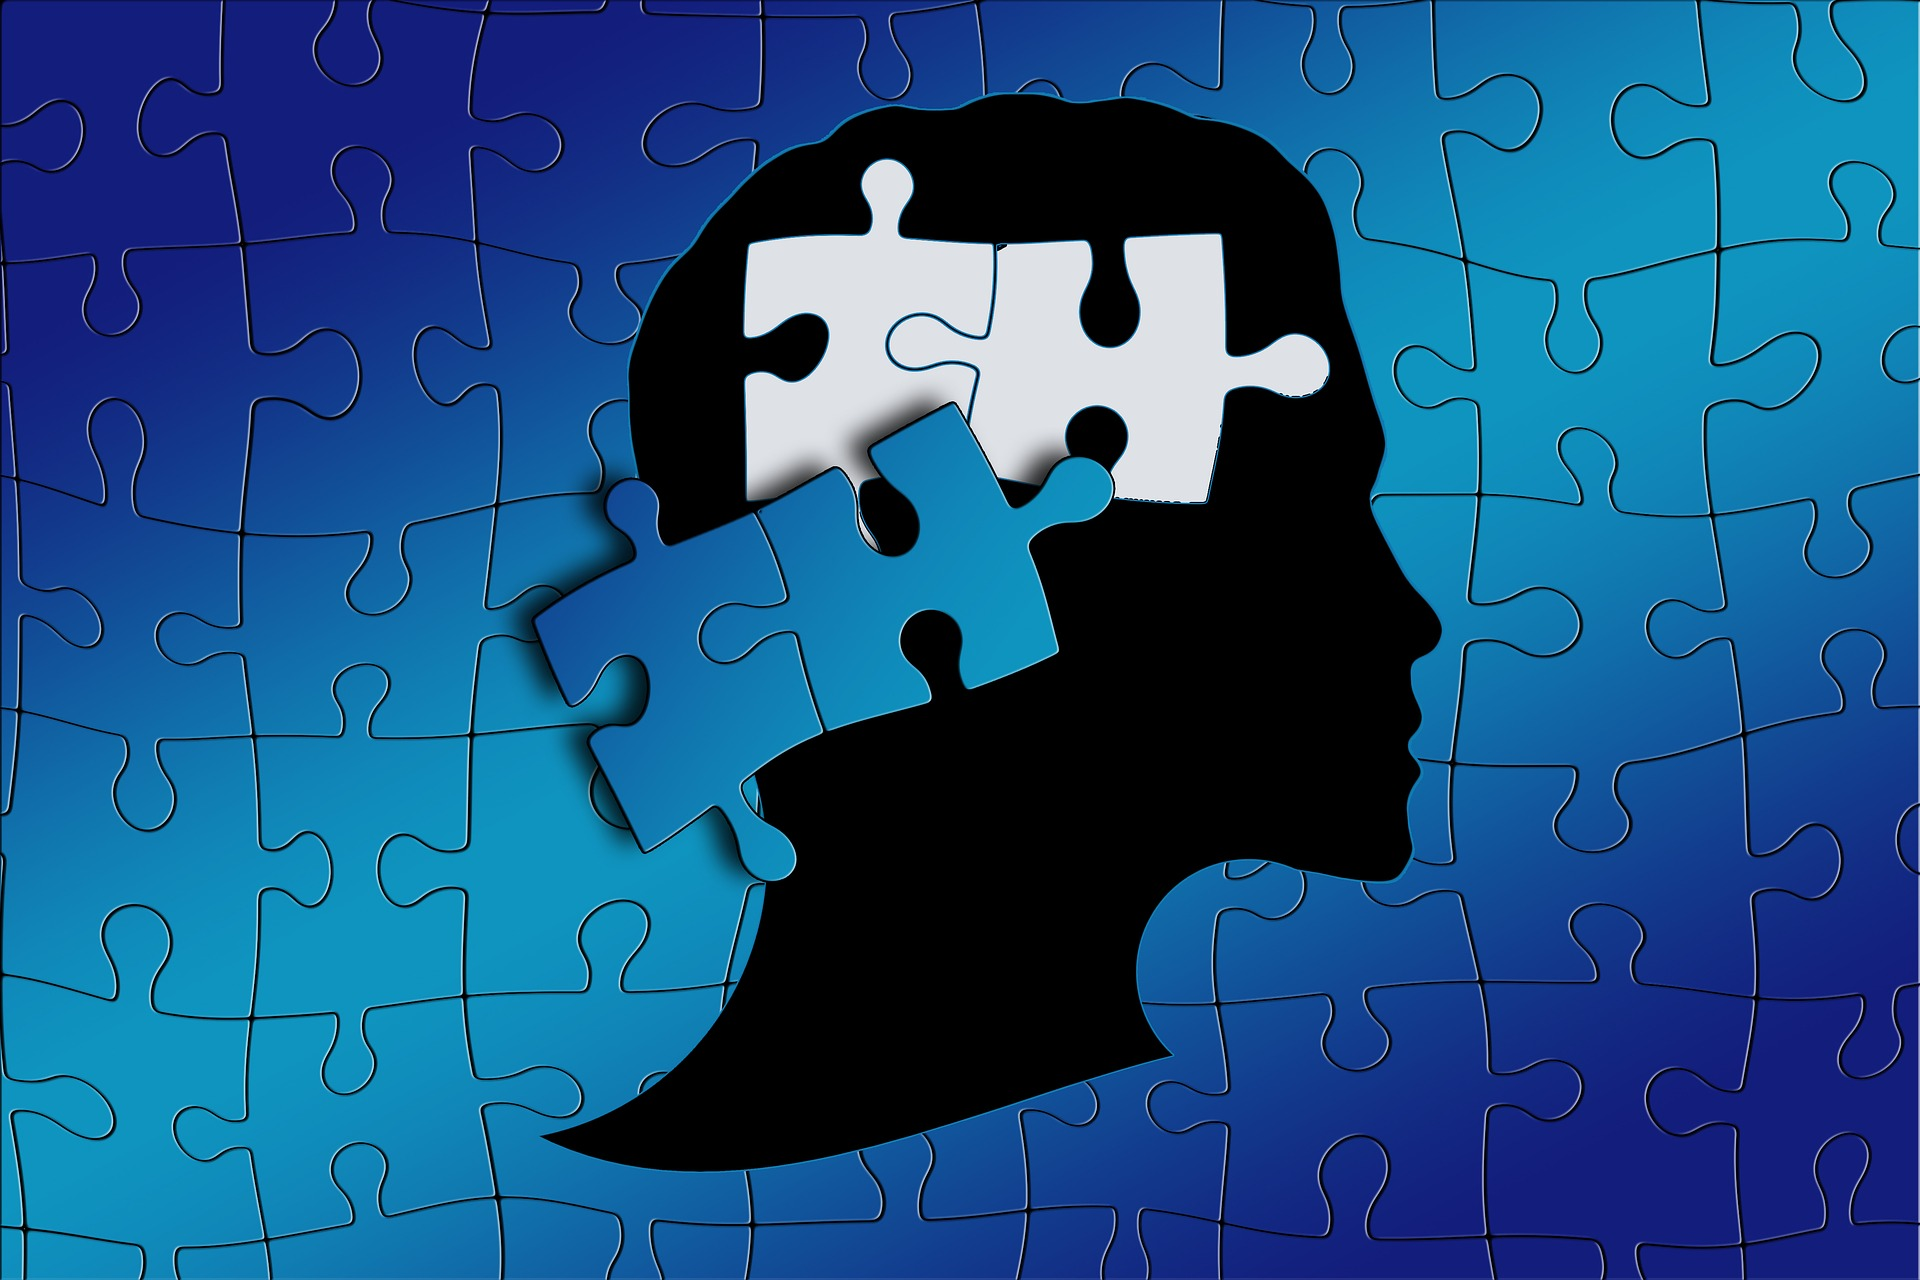 A puzzle of a person's silhouette with two pieces removed from area where brain would be.